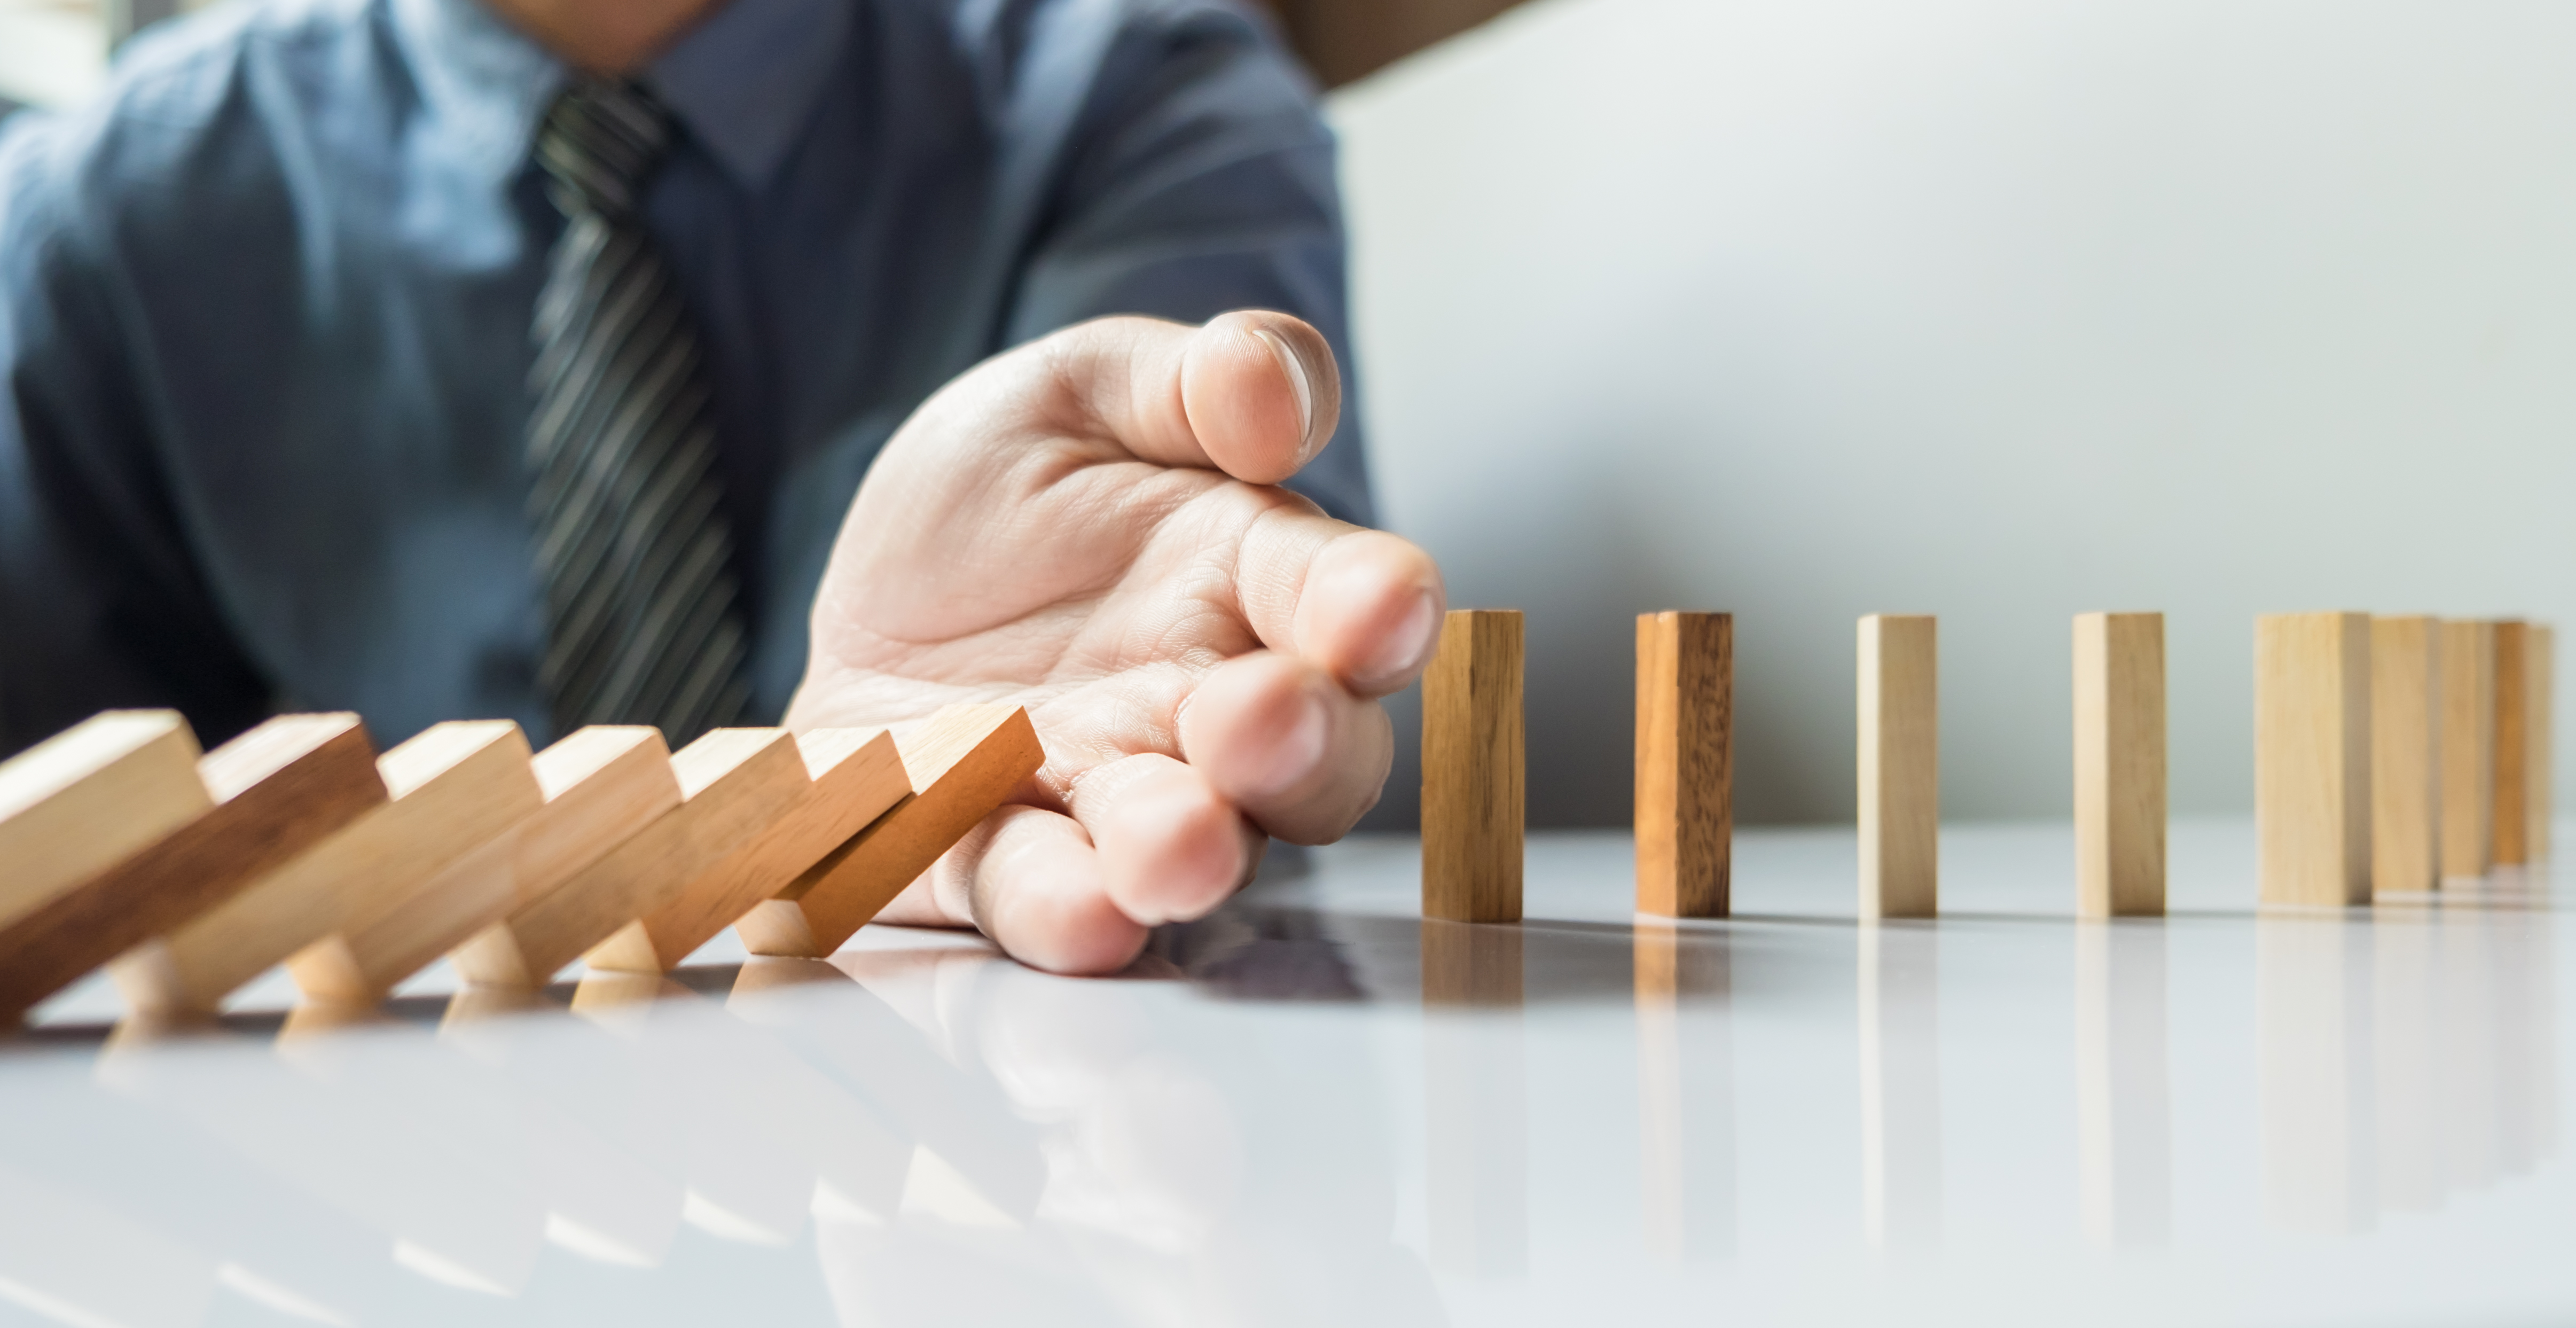 businessman-hand-stop-dominoes-continuous-toppled-risk-with-copyspace.jpg